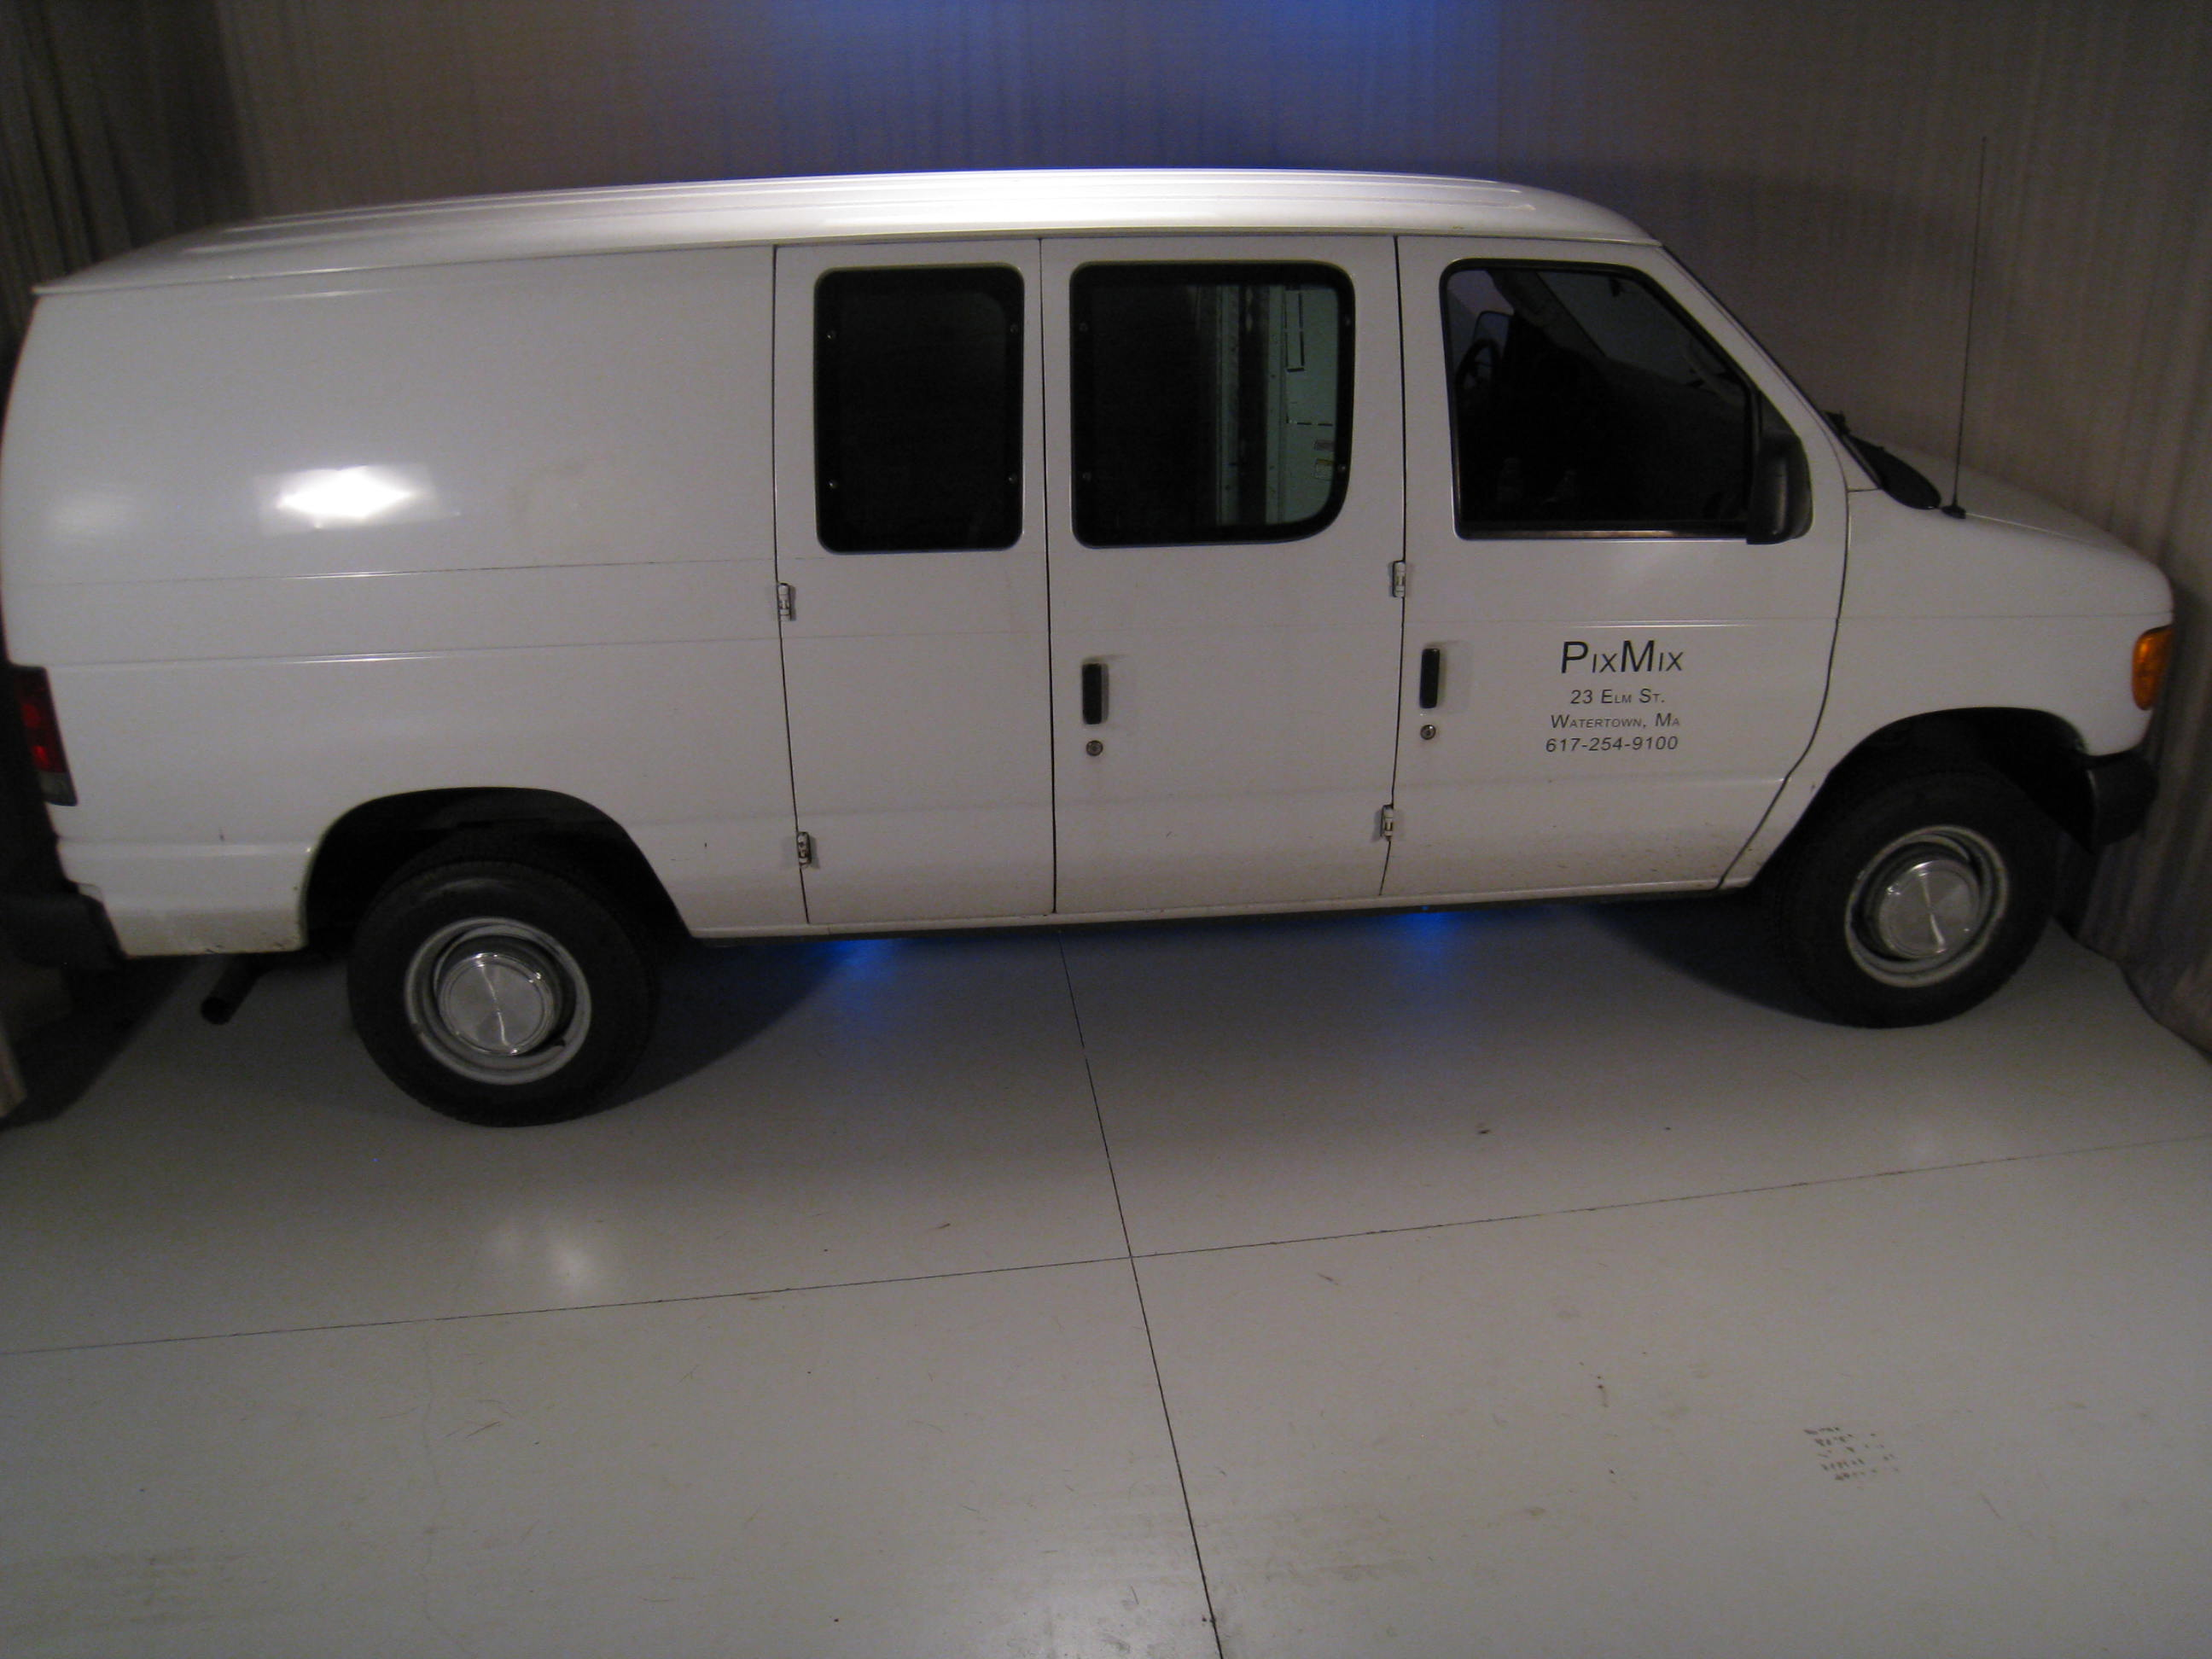 Full Sized Van in Studio